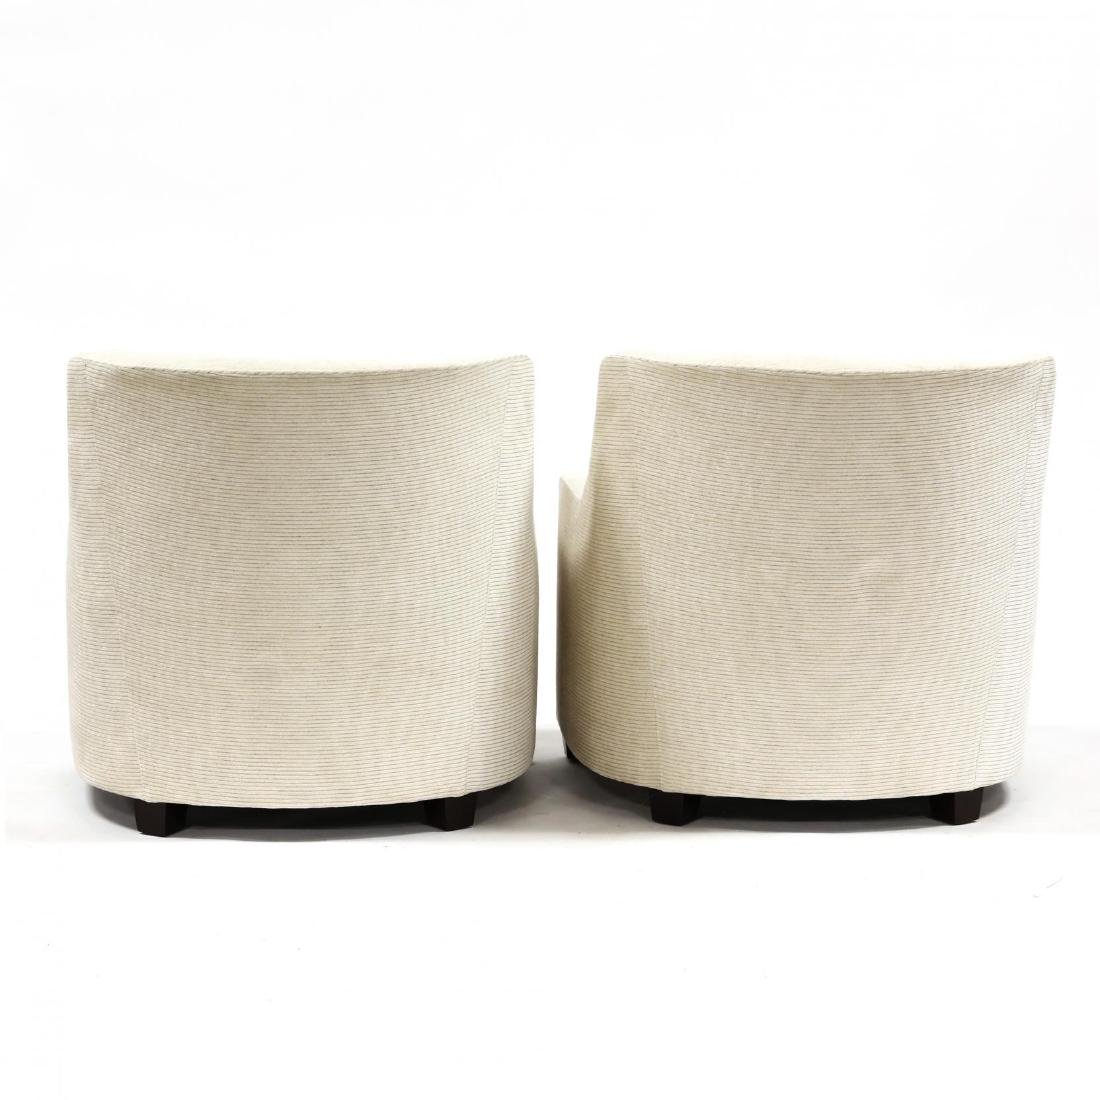 Barbara Barry for Baker, Pair of Tub Chairs - 4